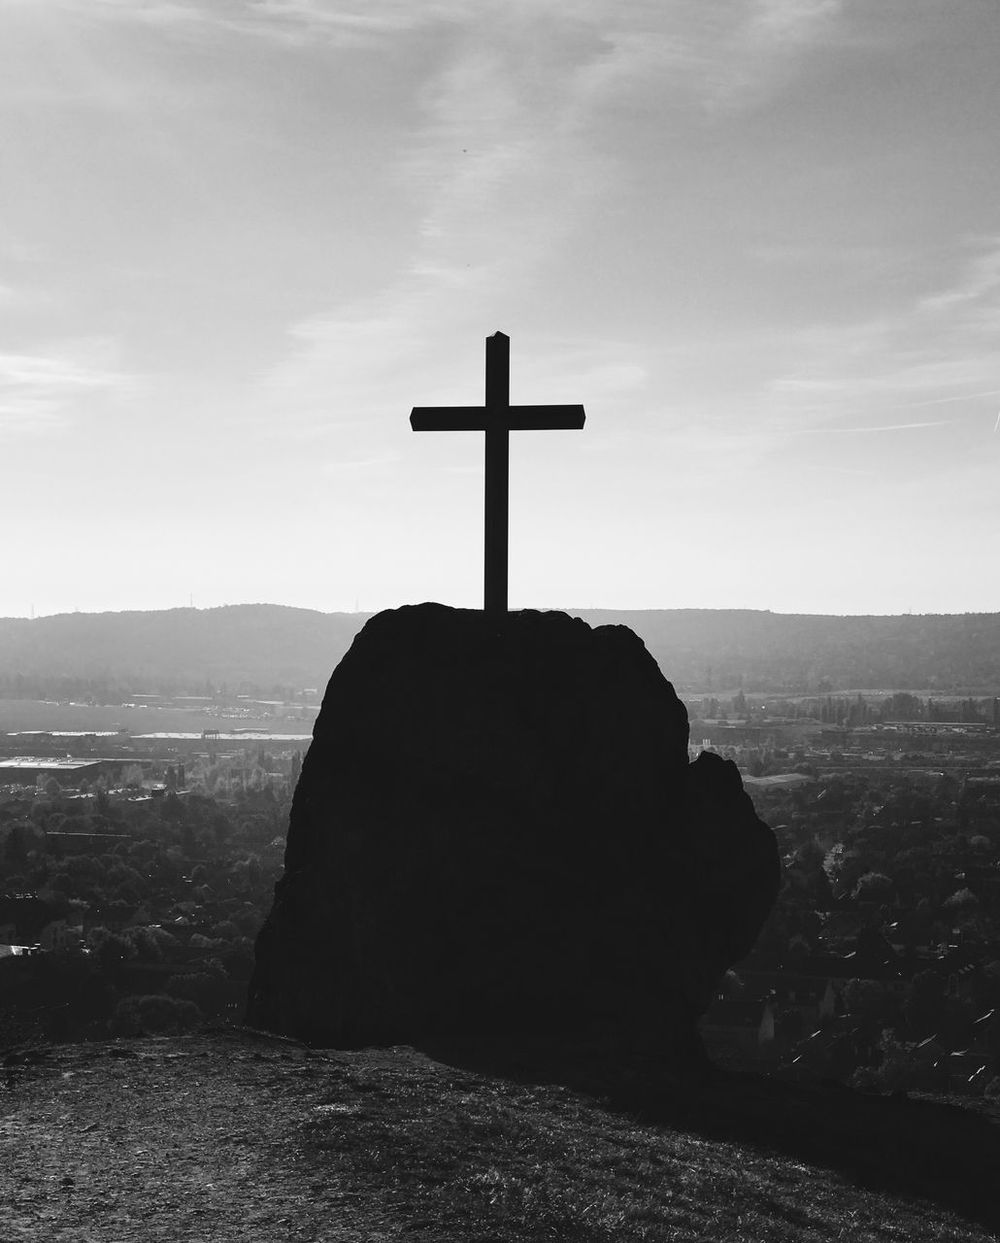 Black & White Hungary Blackandwhite Bnw_captures Bnw_collection Bnw_life Bnw_society Bw_collection Bw_lover Cross Monochrome Monotone No People Outdoors Religion Rock - Object Spirituality Tranquil Scene Tranquility